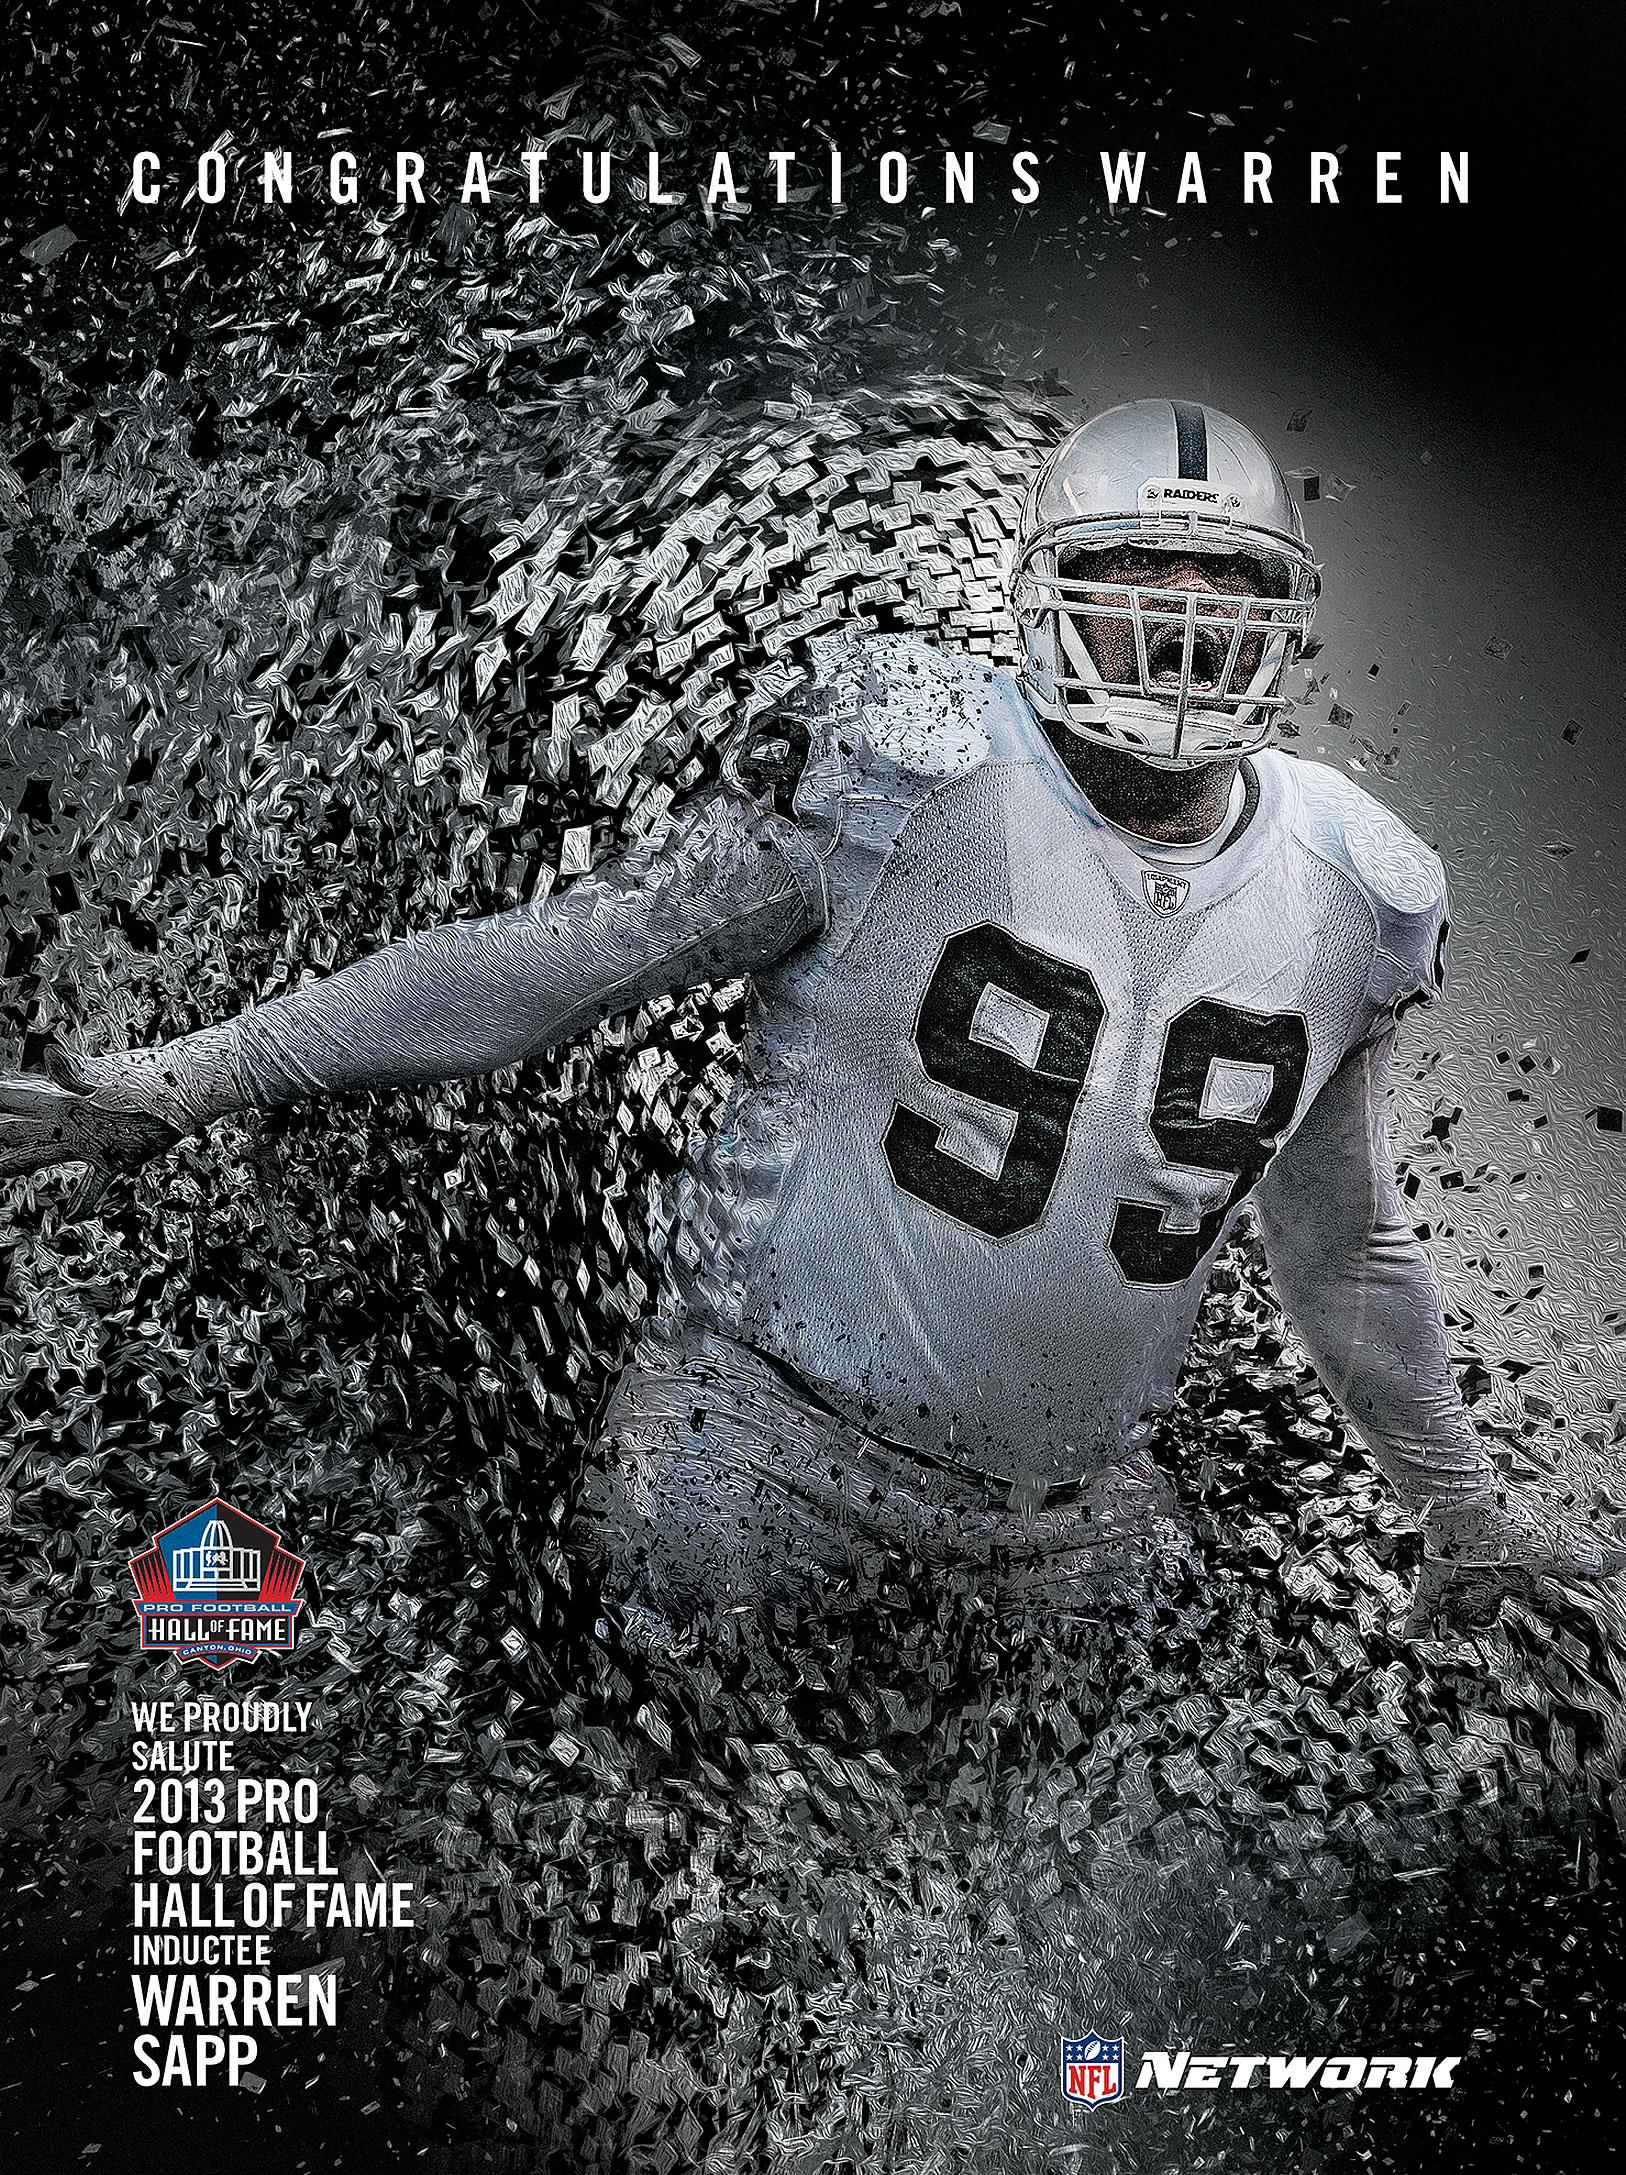 Print ad for NFL Network